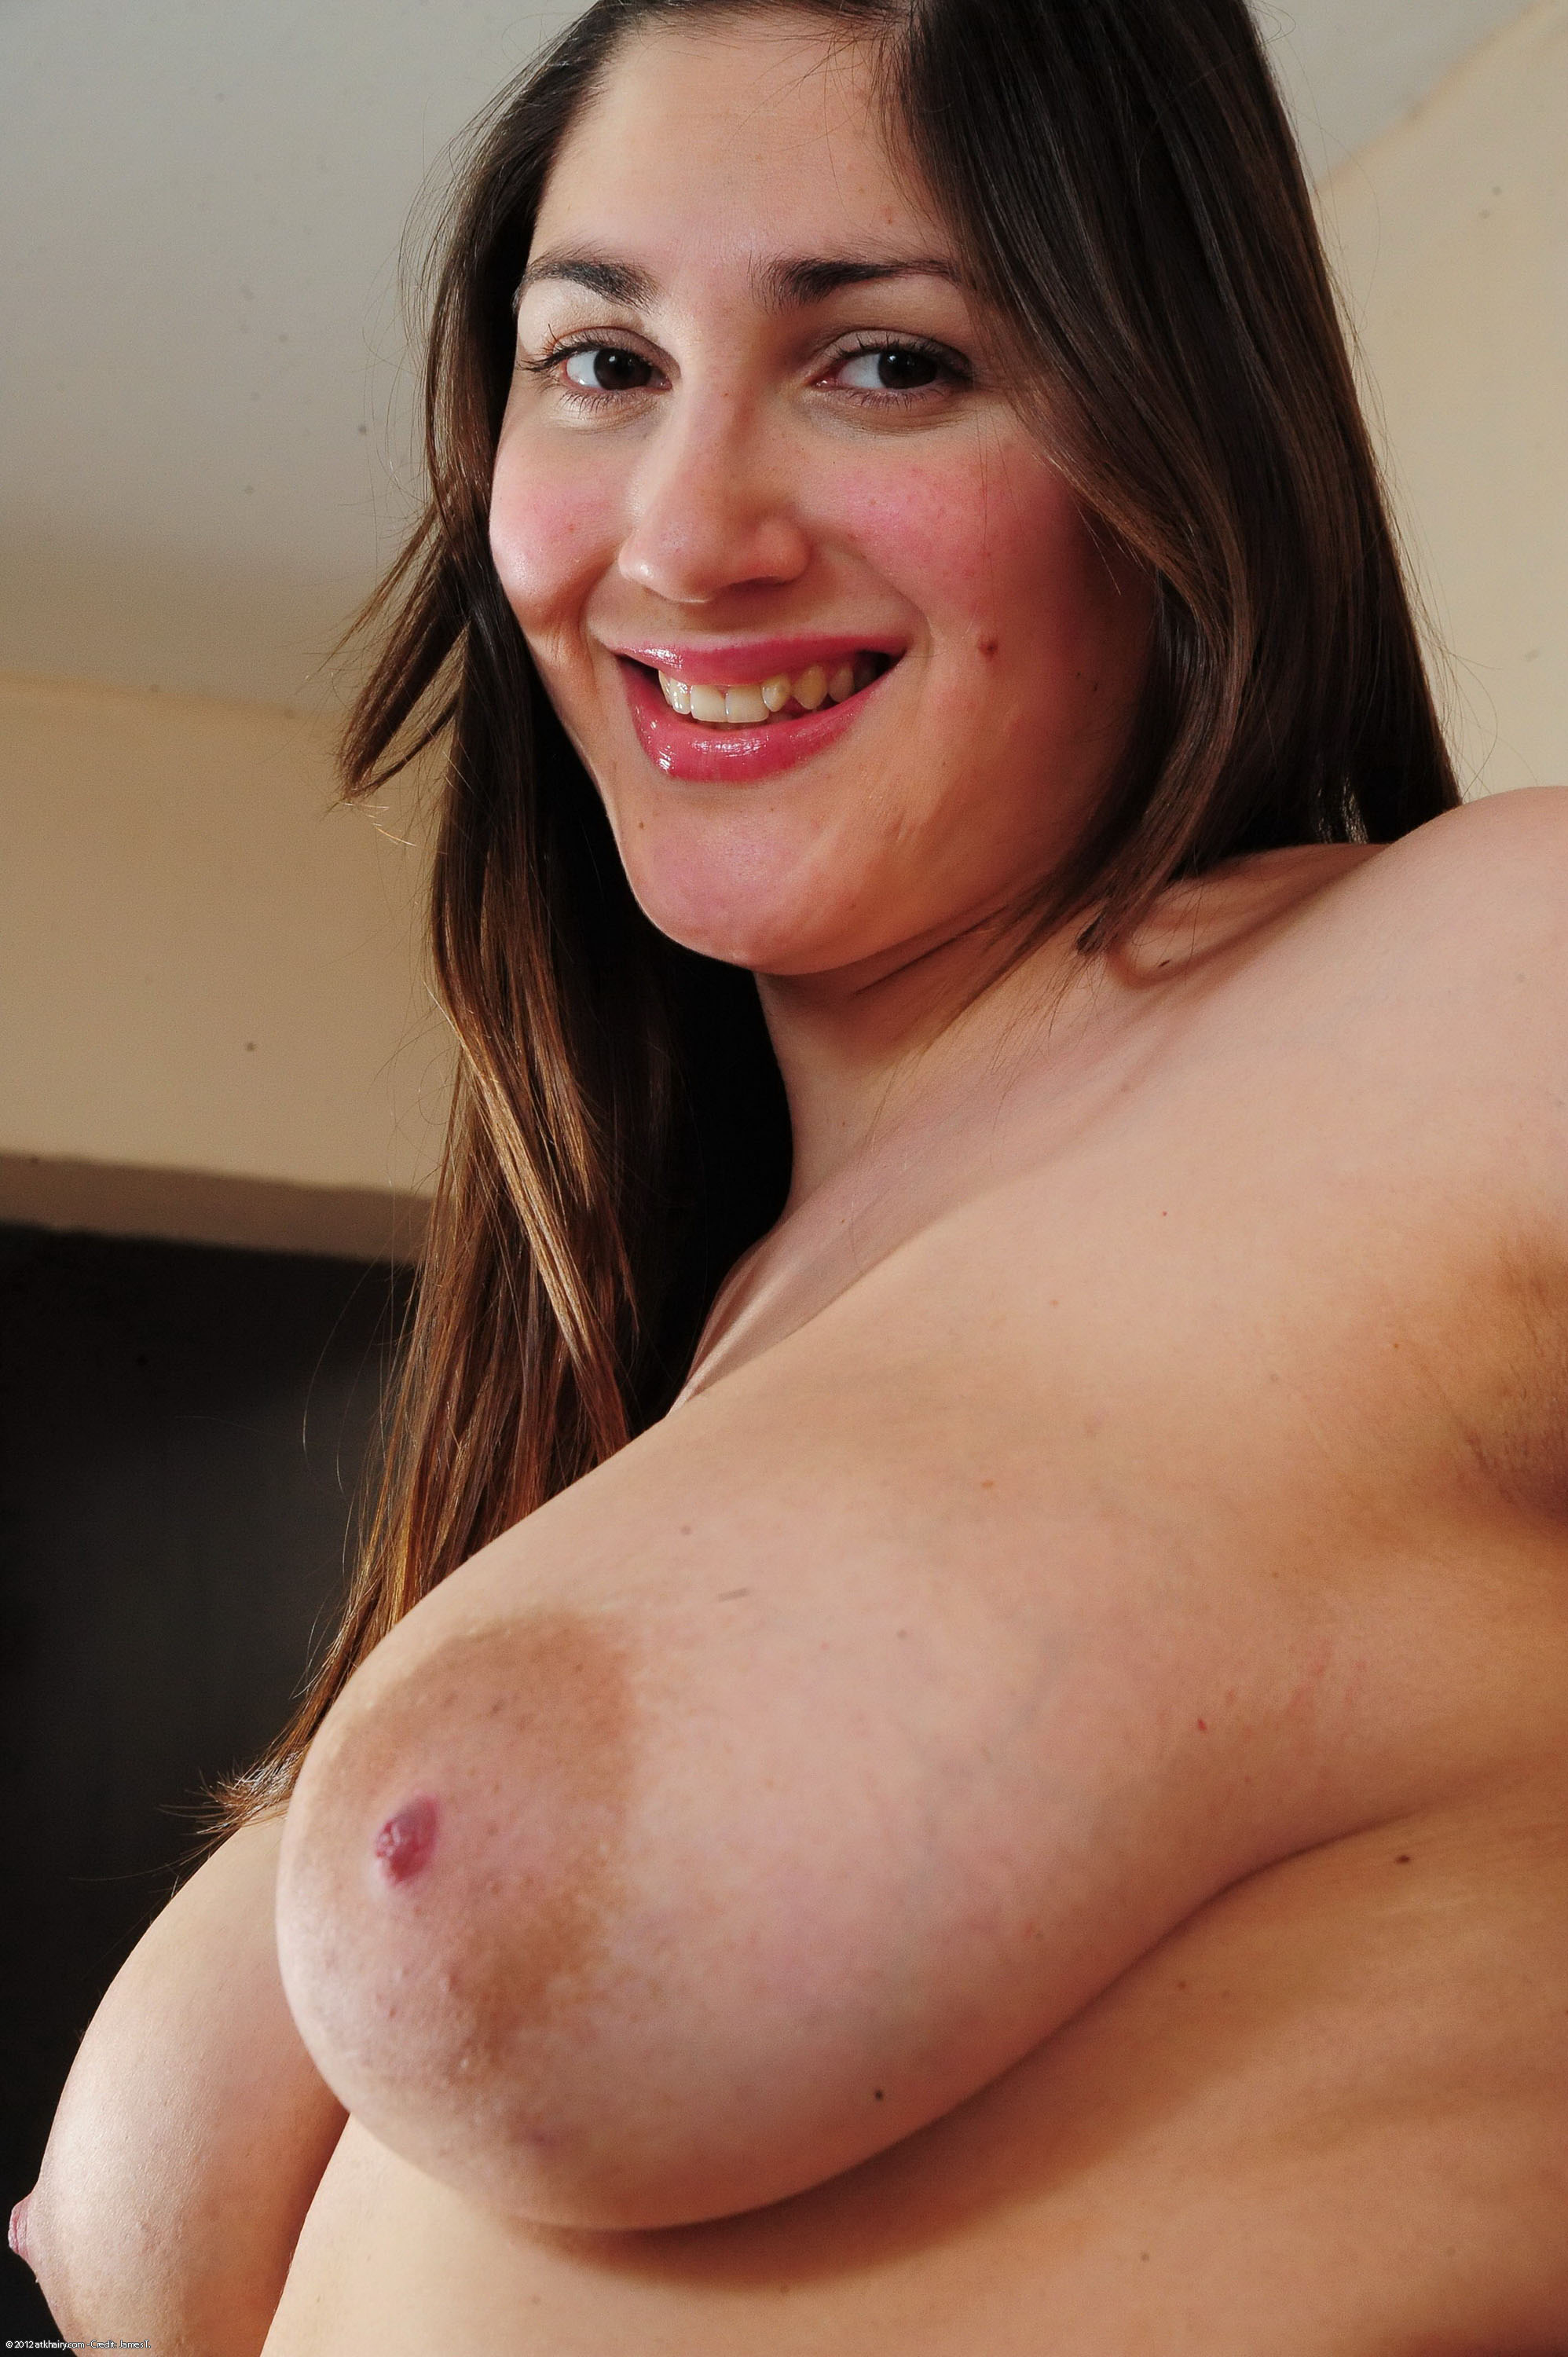 Converting IMG TAG in the page URL ( Ls Bc Girl - Hot Porno Pic )